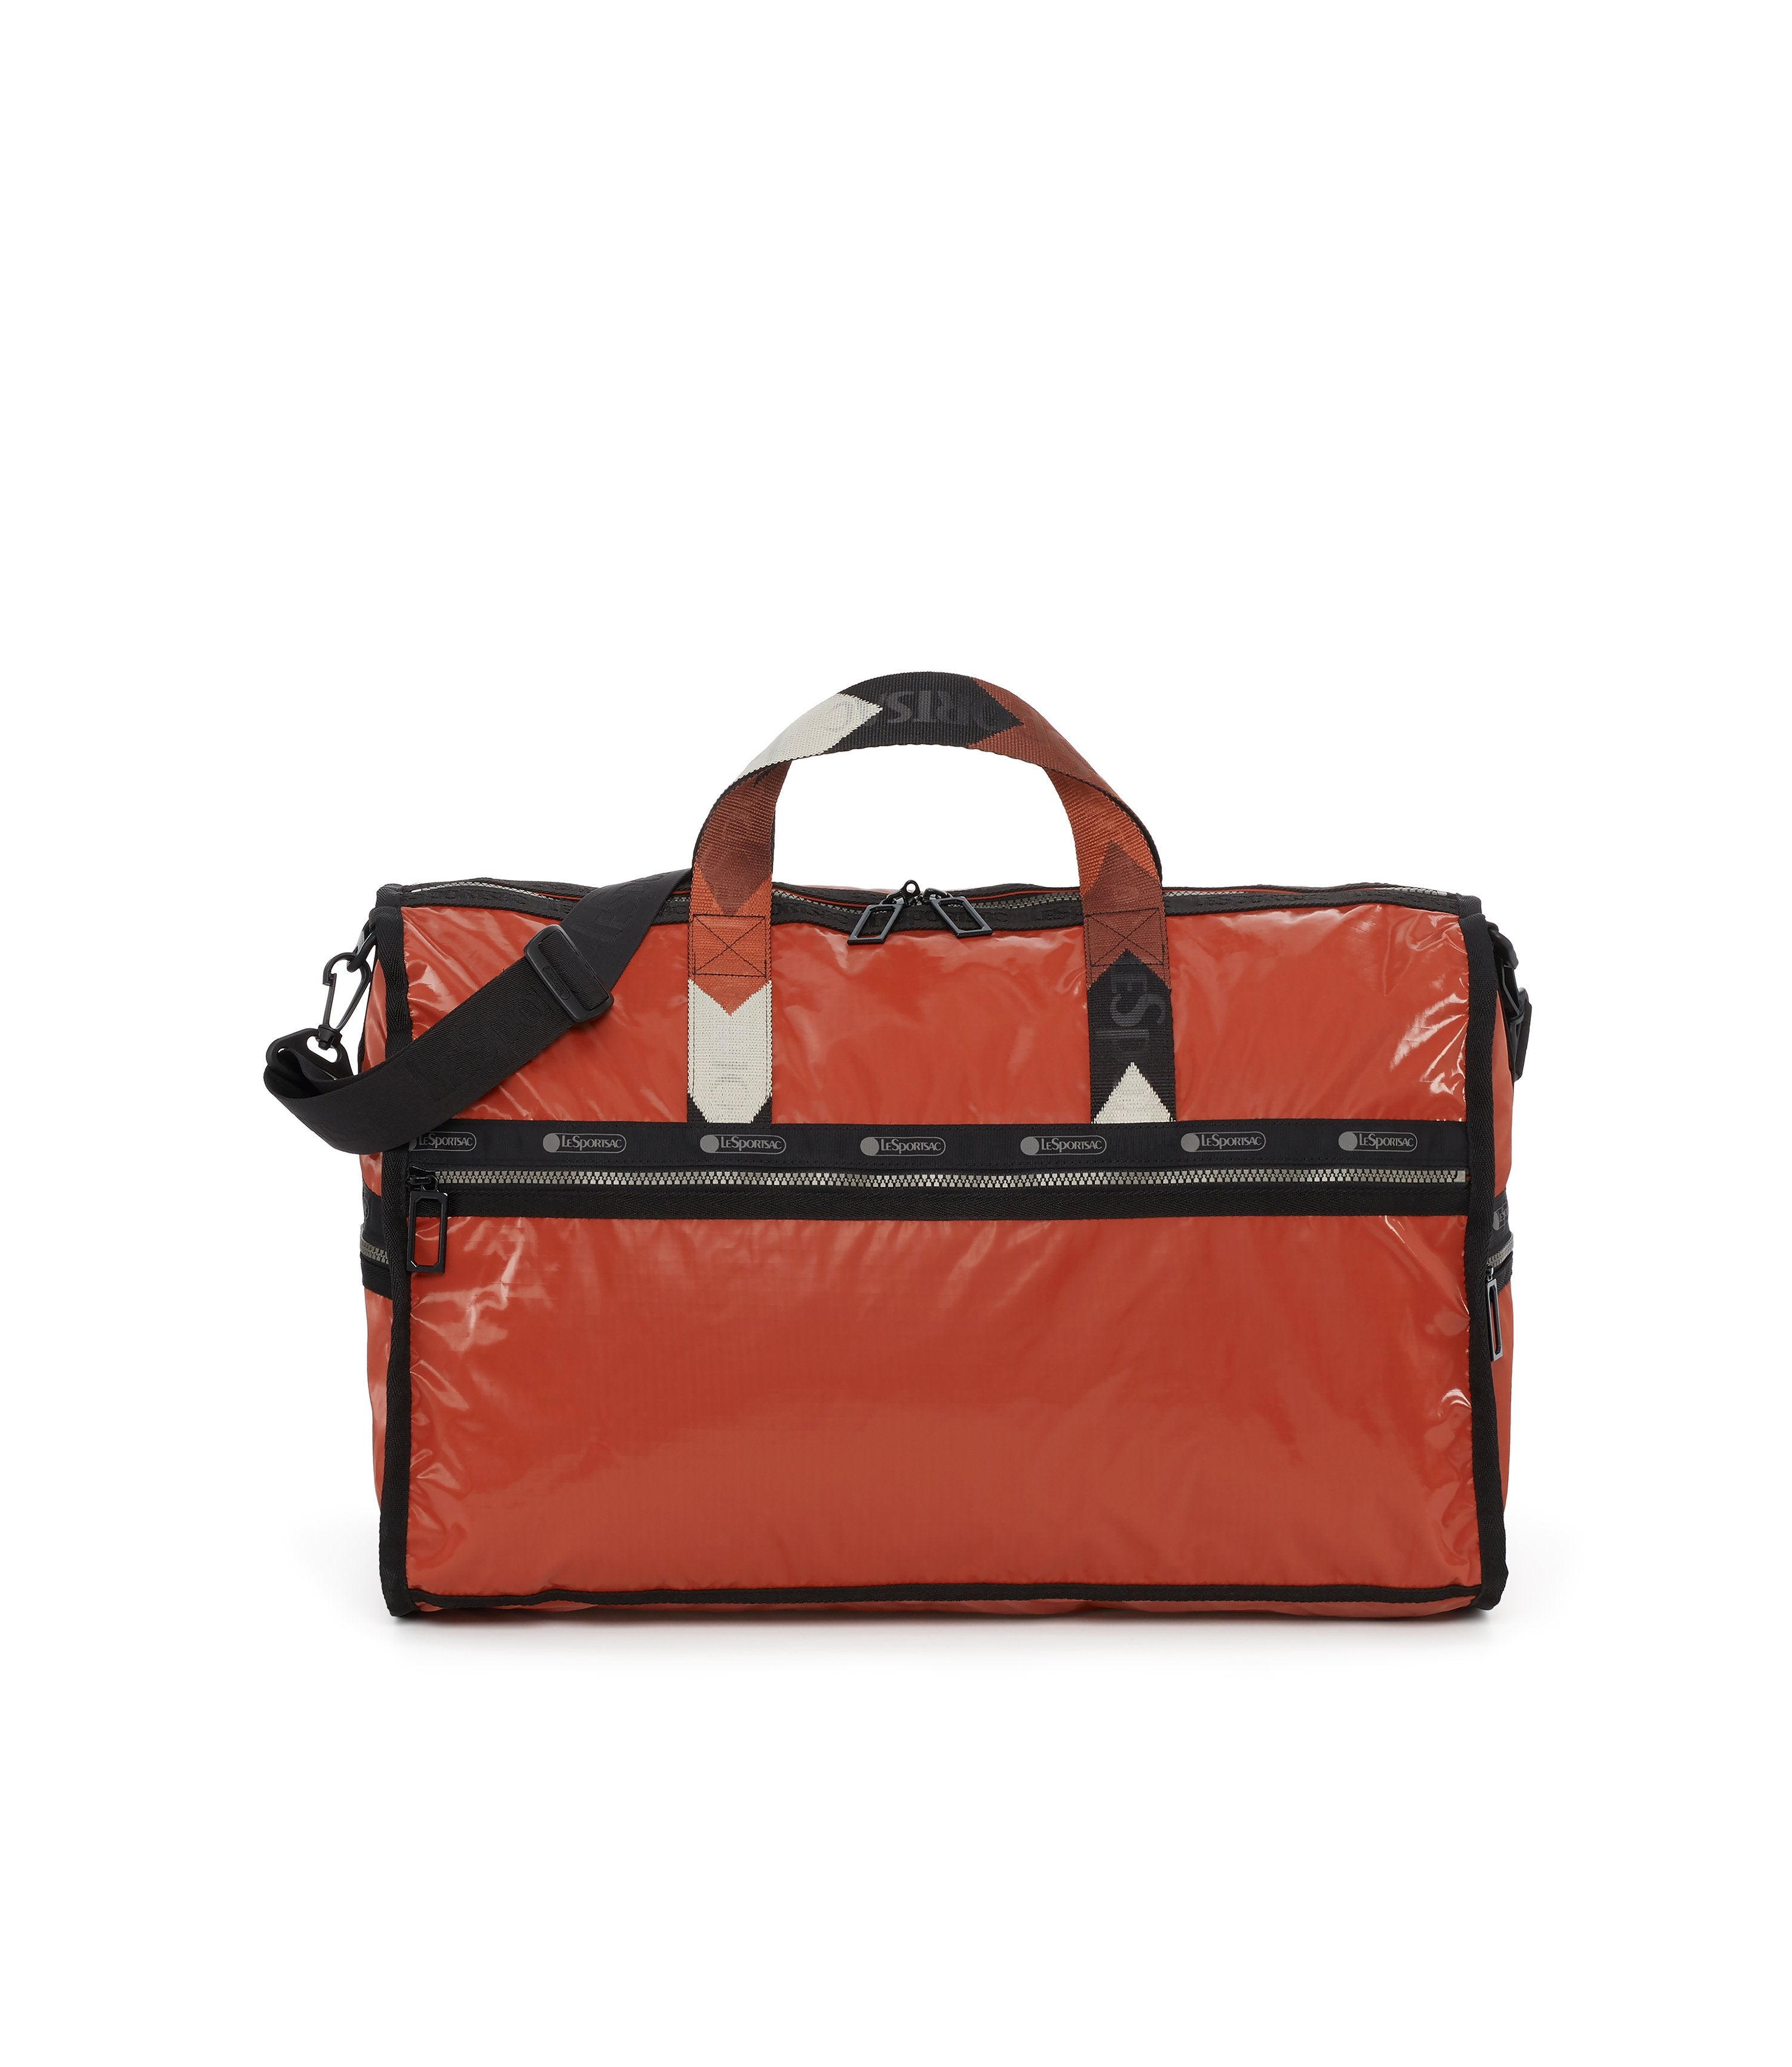 Large Weekender Bags, Duffle Bags, Carry-on, LeSportsac, Cinnabar Arrow Liquid Patent